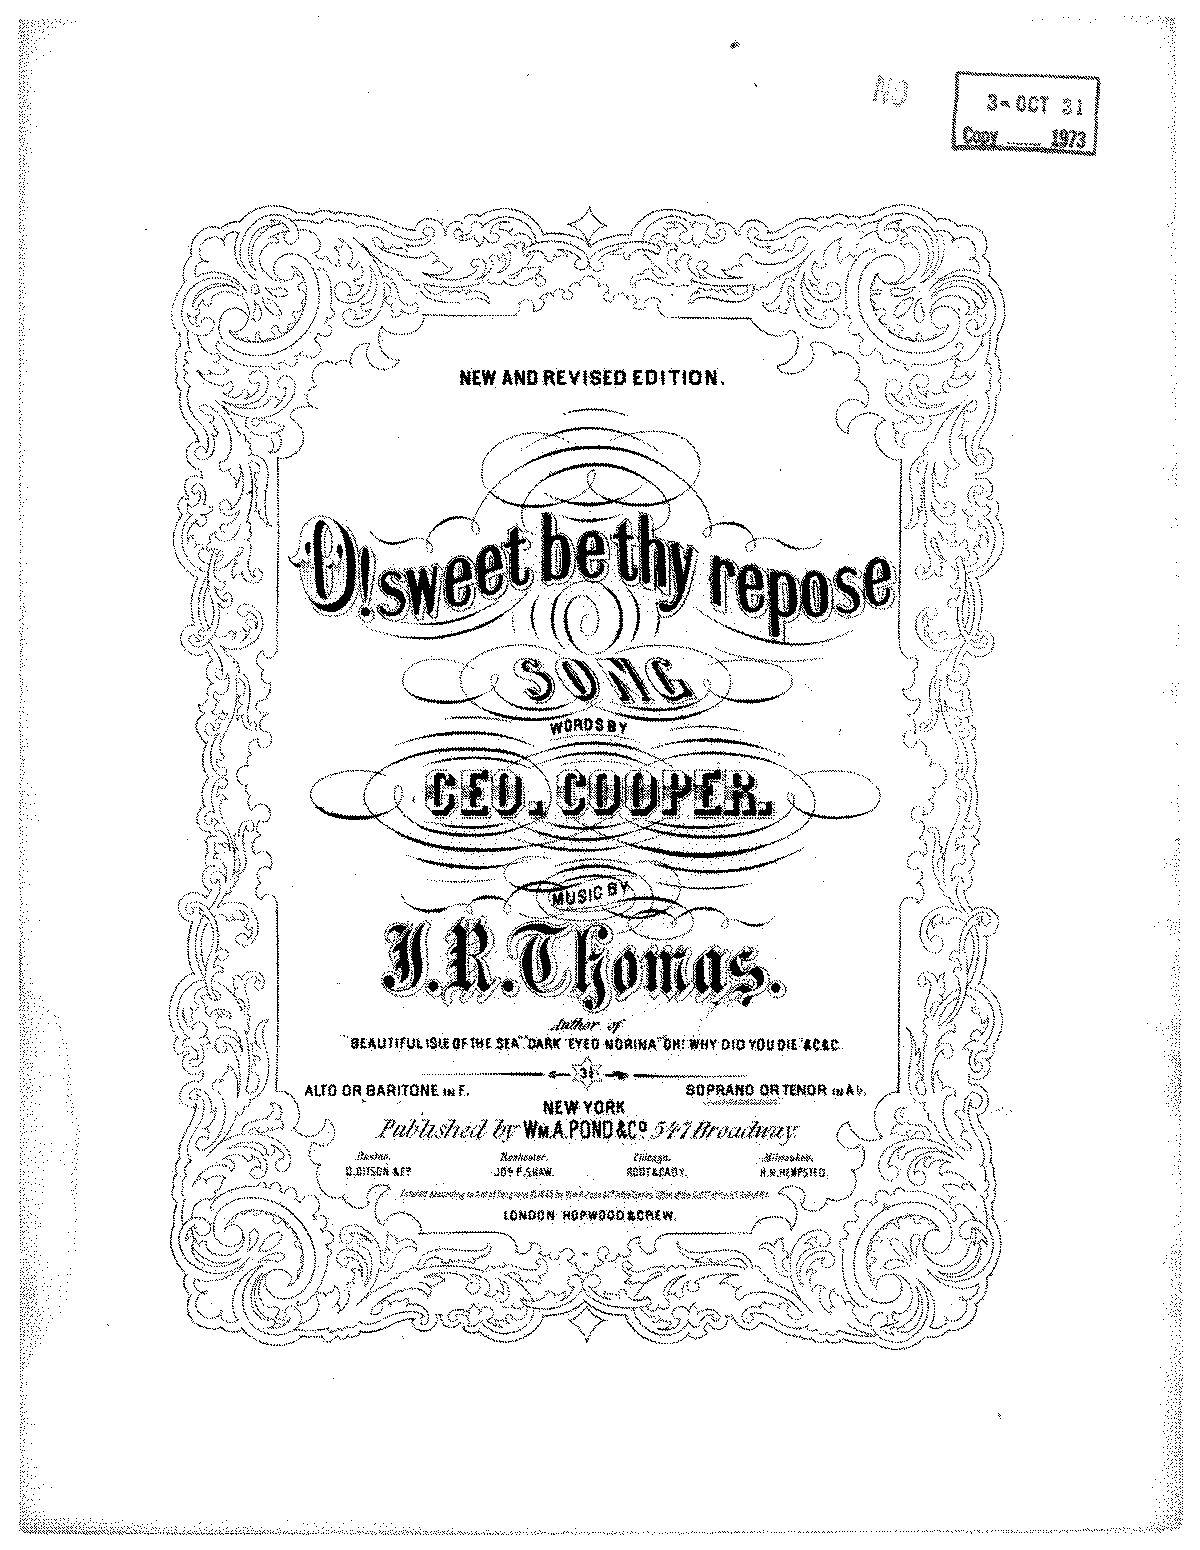 PMLP678395-O! Sweet Be Thy Repose Original Score 6.pdf